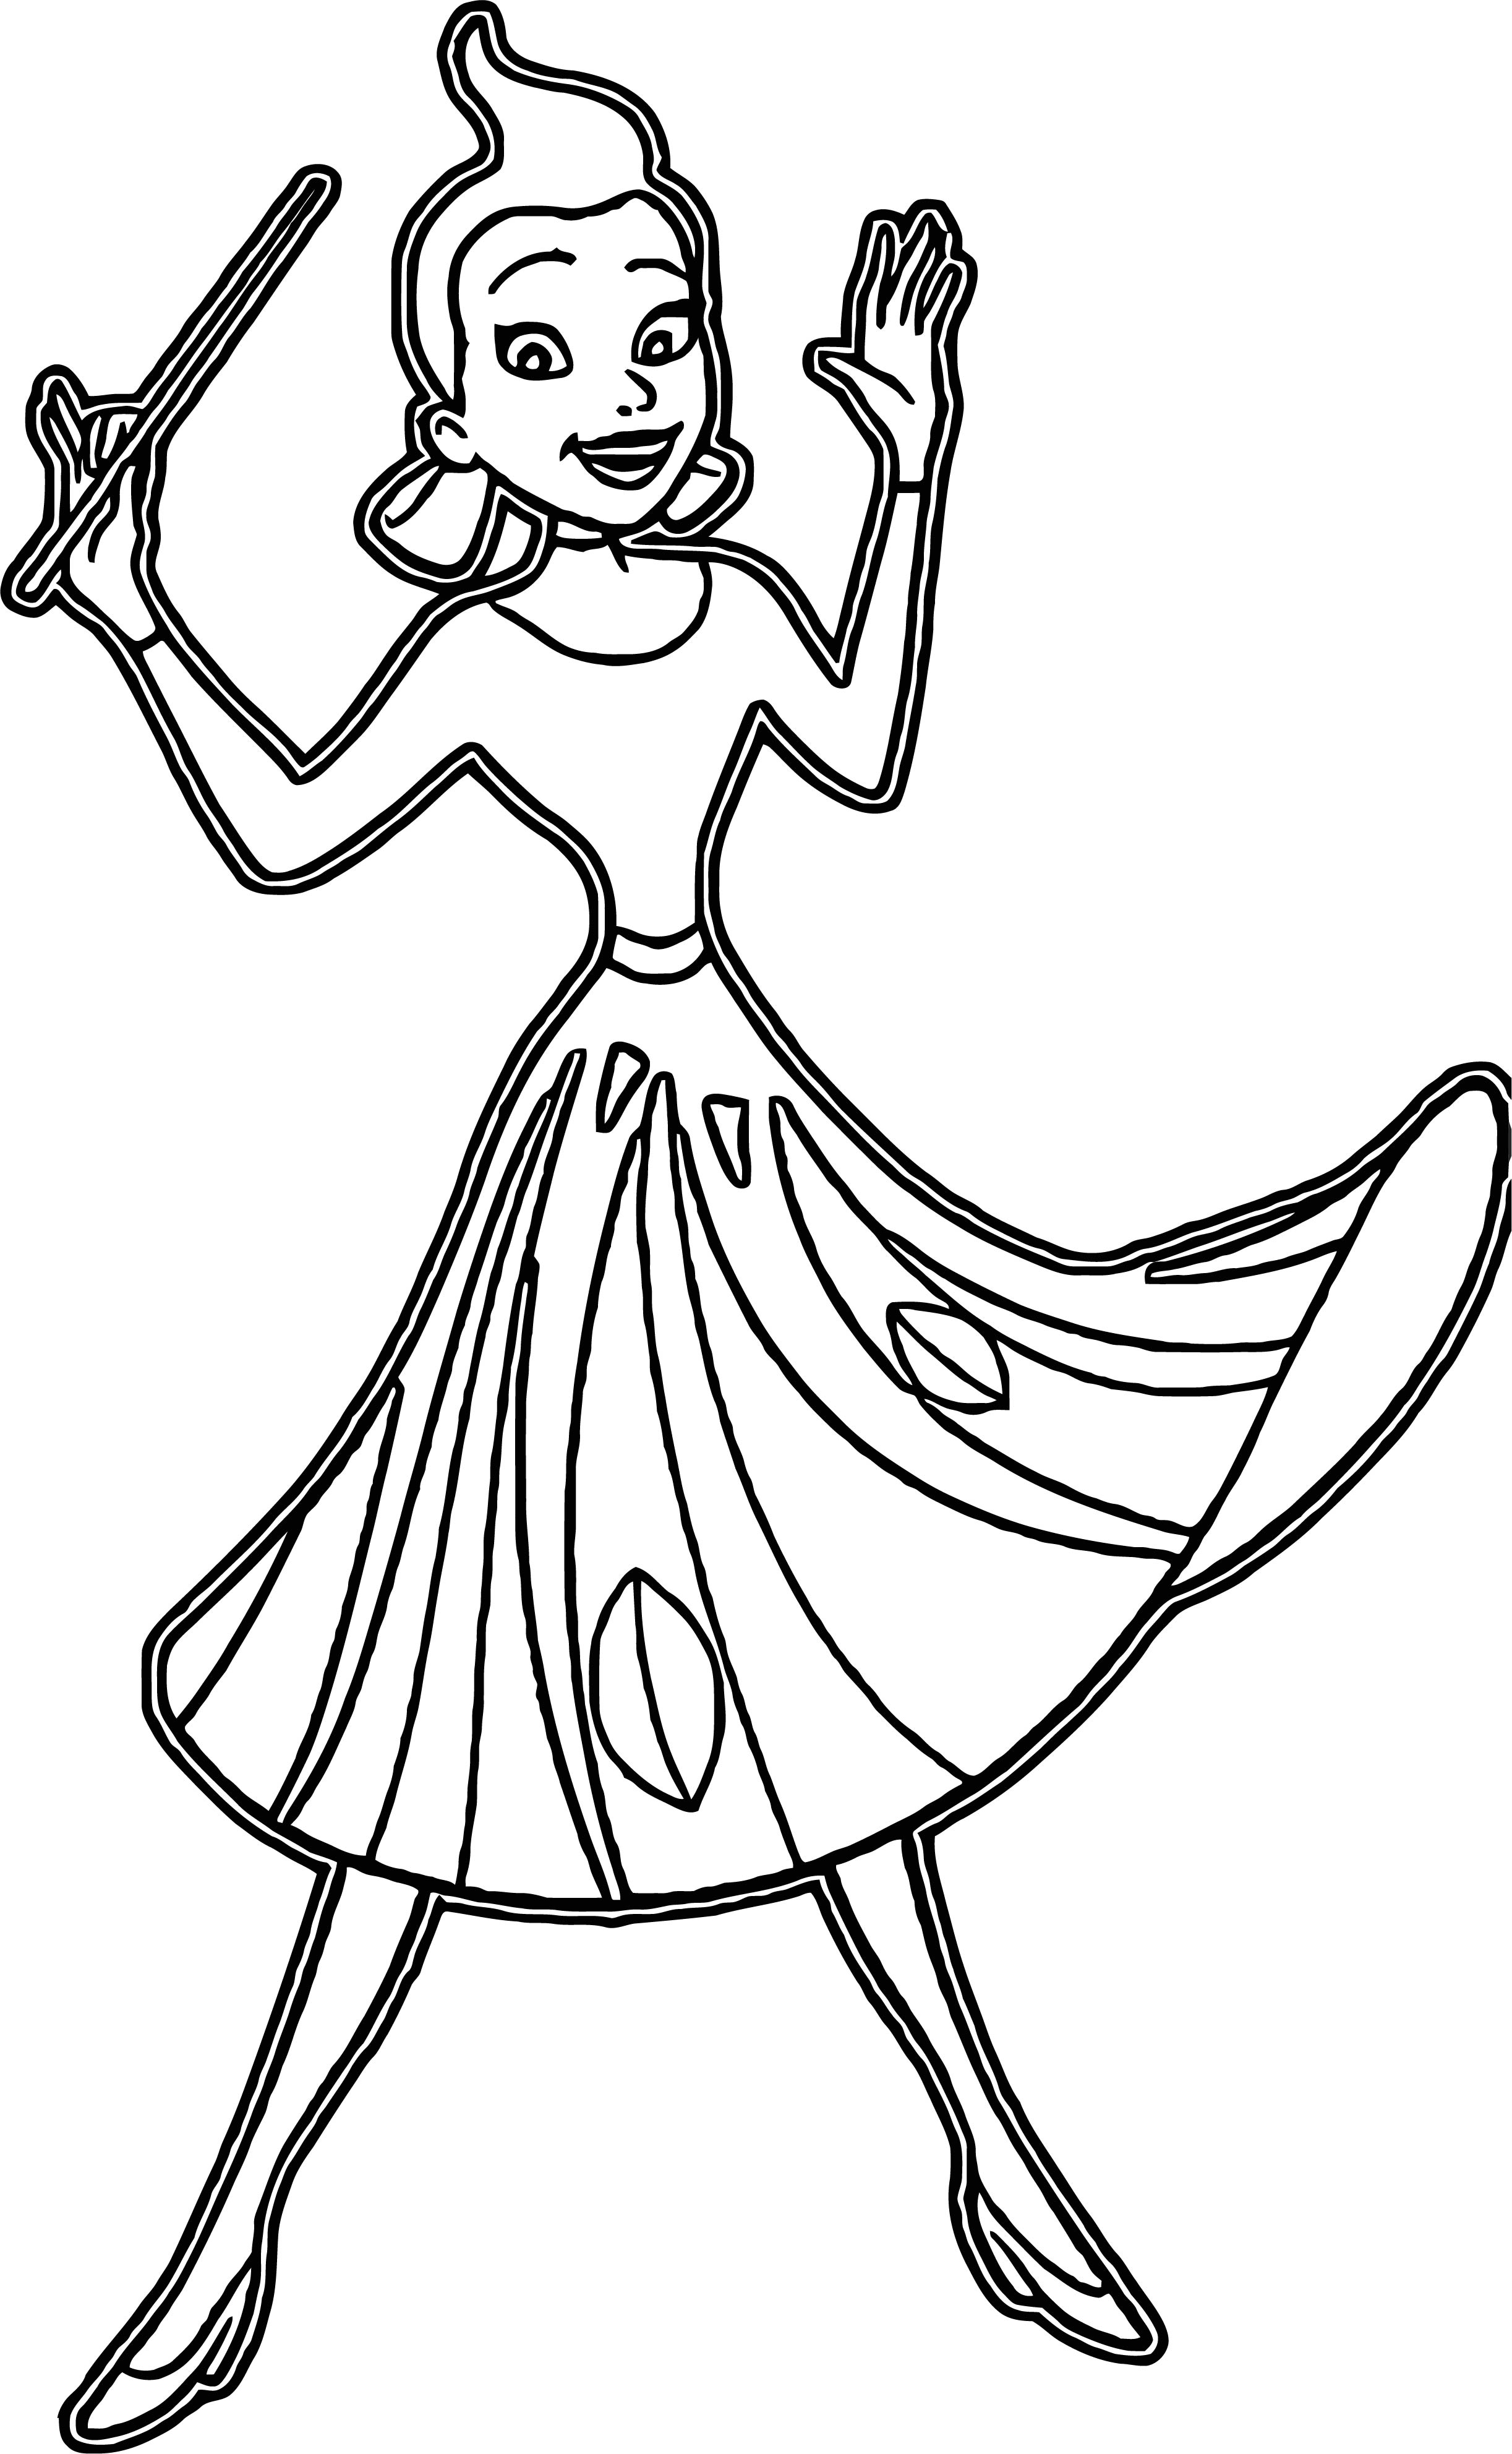 Meet The Robinsons Coloring Page 03